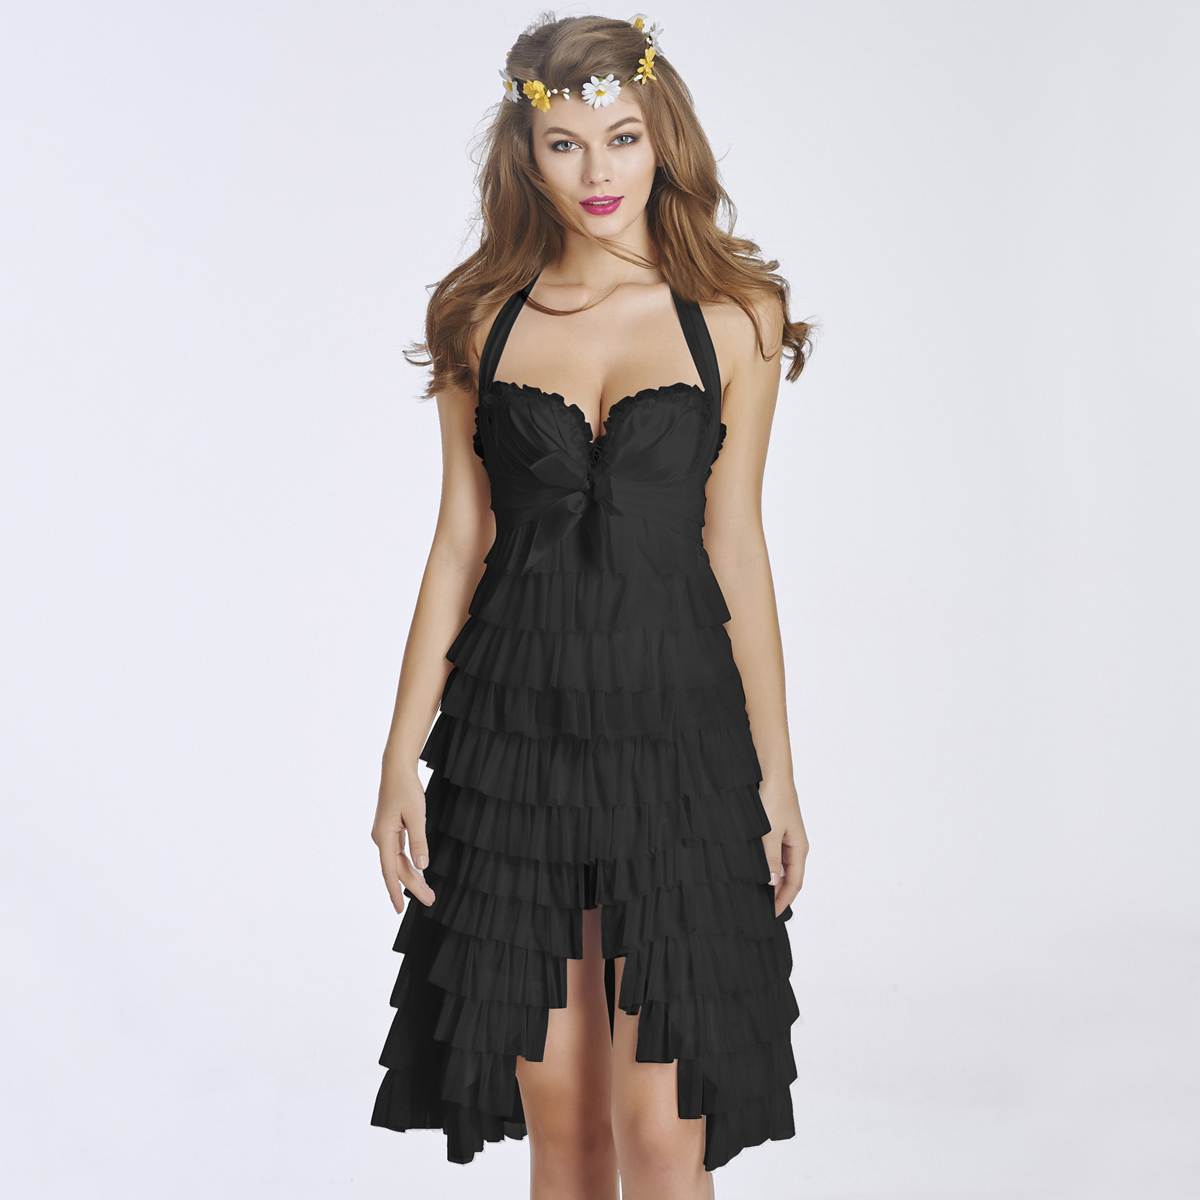 Women's Elegant black Lace Overlay Corset Dress With Underwire Cups CO5051